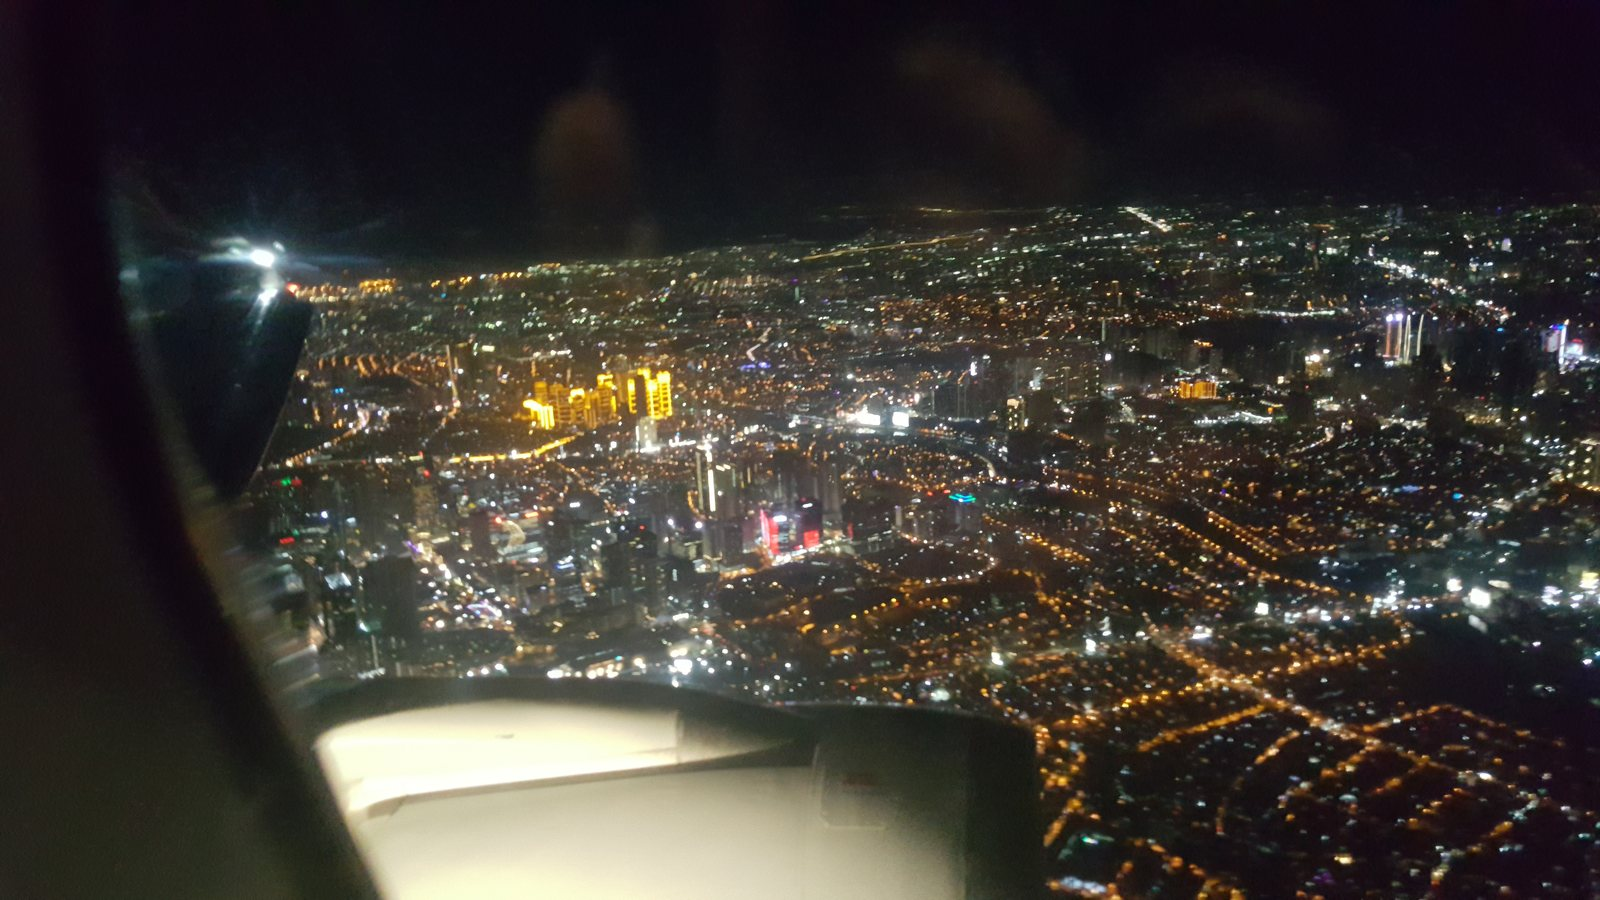 Nice view of Makati and Mandaluyong from the air